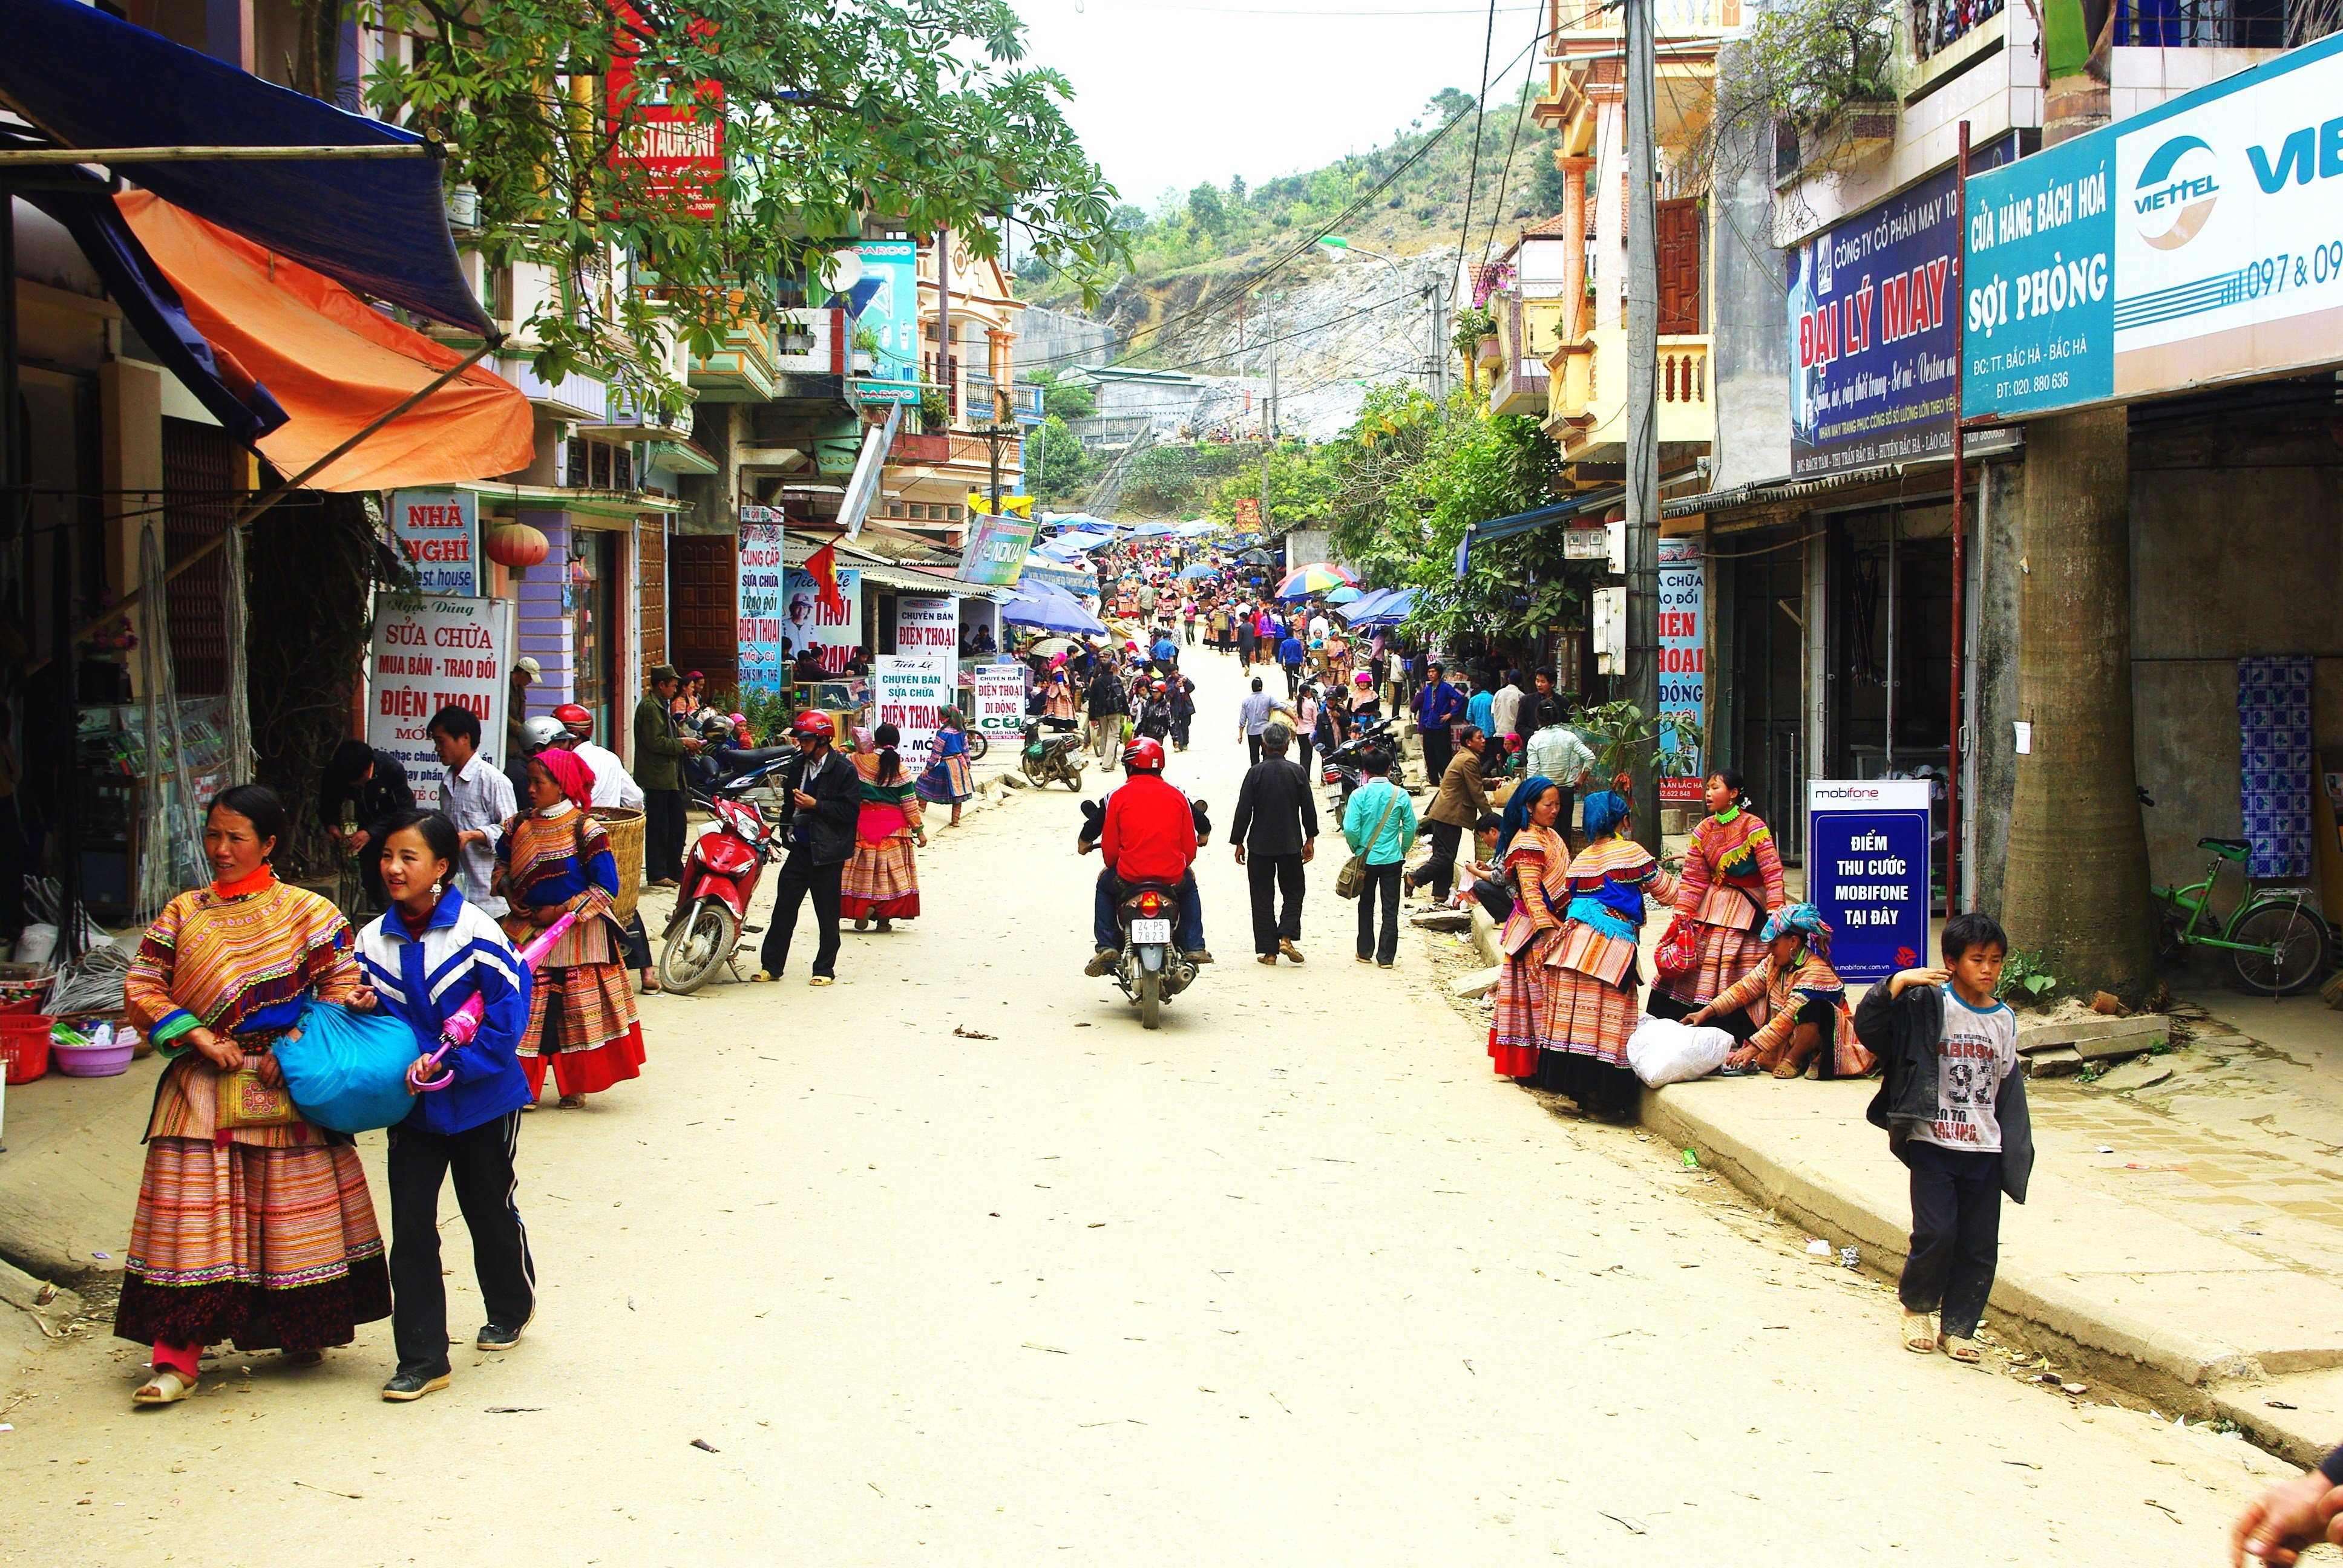 The main street of Bac Ha has a wild west feel to it.